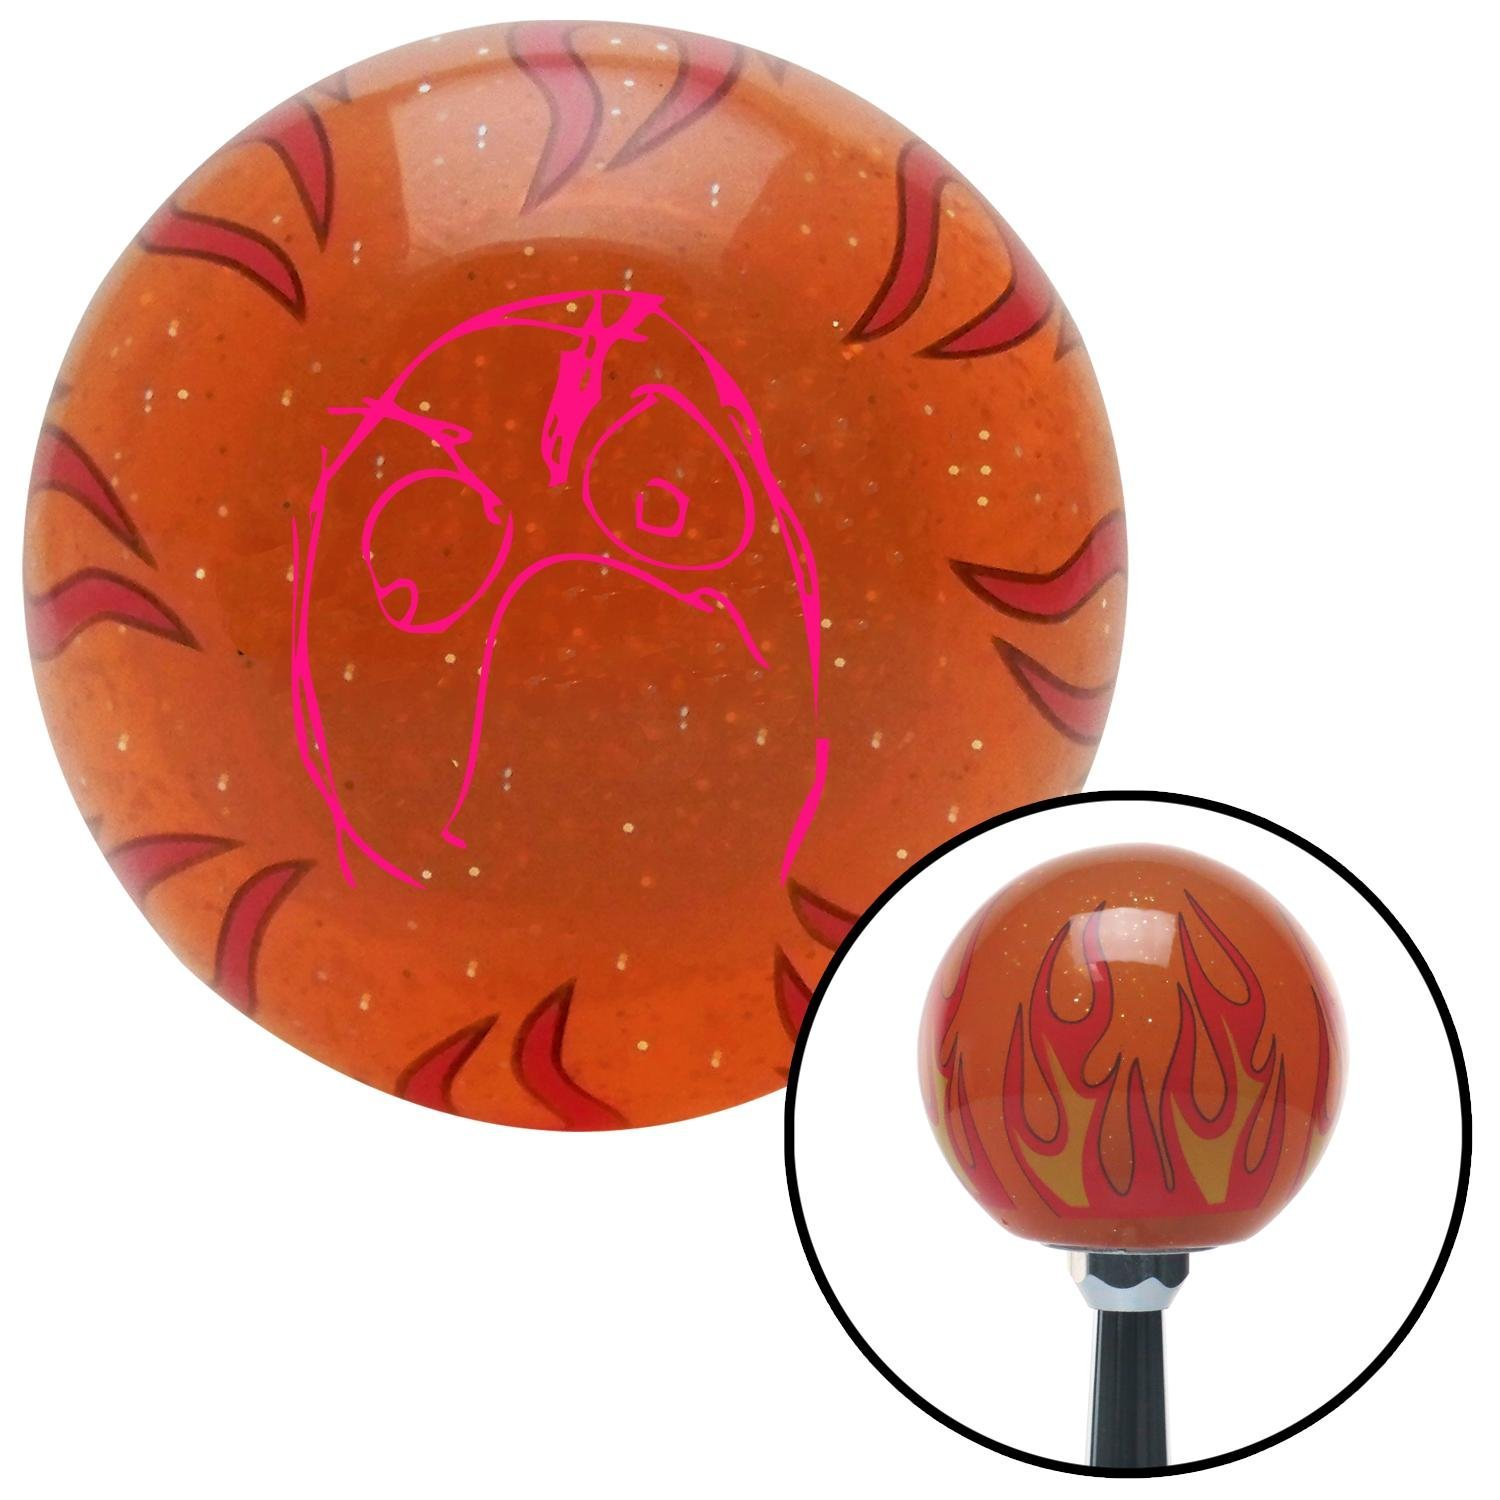 Orange Cops 3 Me American Shifter 264847 Green Flame Metal Flake Shift Knob with M16 x 1.5 Insert